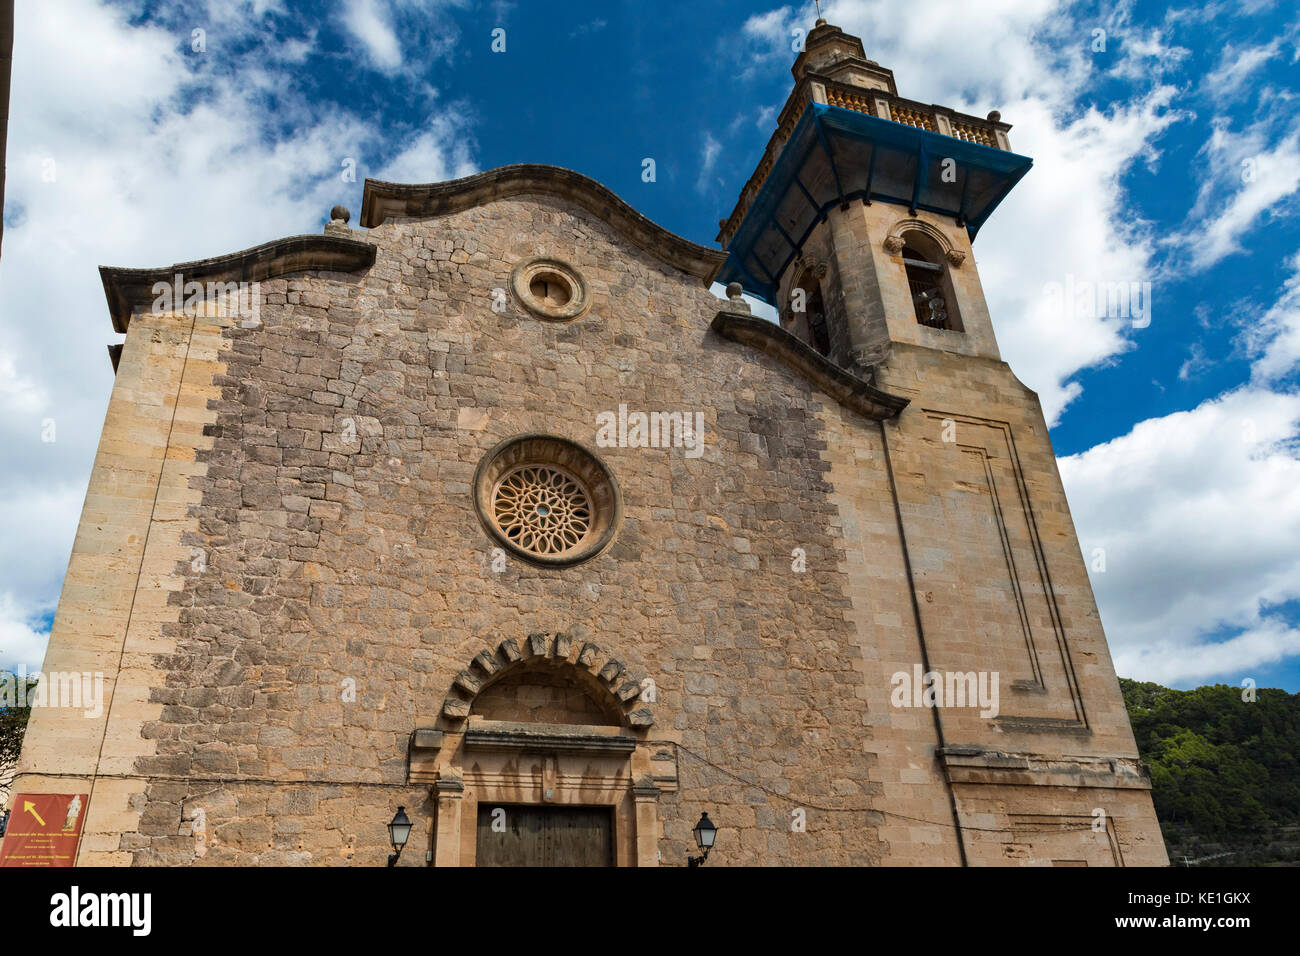 The saint of valldemossa stock photos the saint of valldemossa stock images alamy - Azulejos mallorca ...